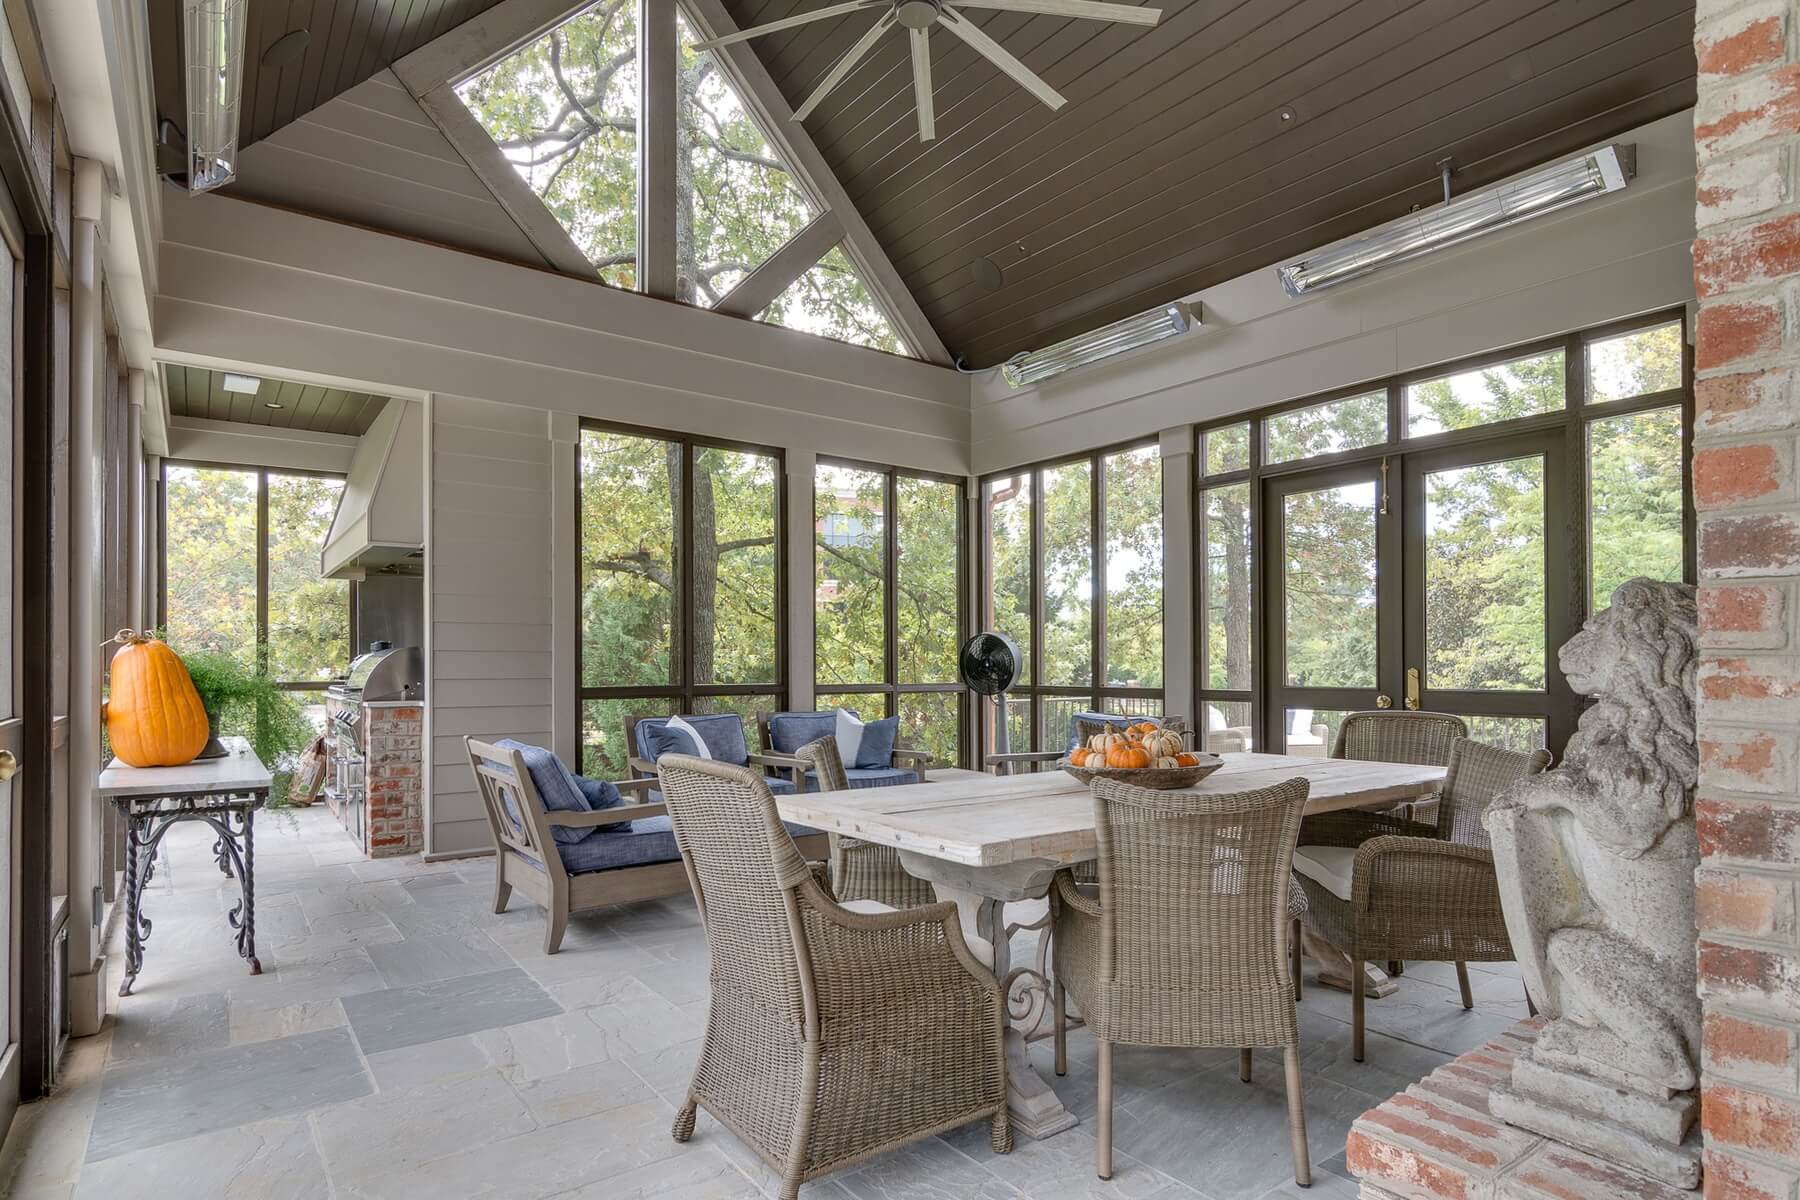 A wing of this roomy screened patio is the perfect spot for an outdoor kitchen. The outdoor vent hood lifts smoke away from the space, allowing the owners and guests to enjoy the porch while food is being prepared.